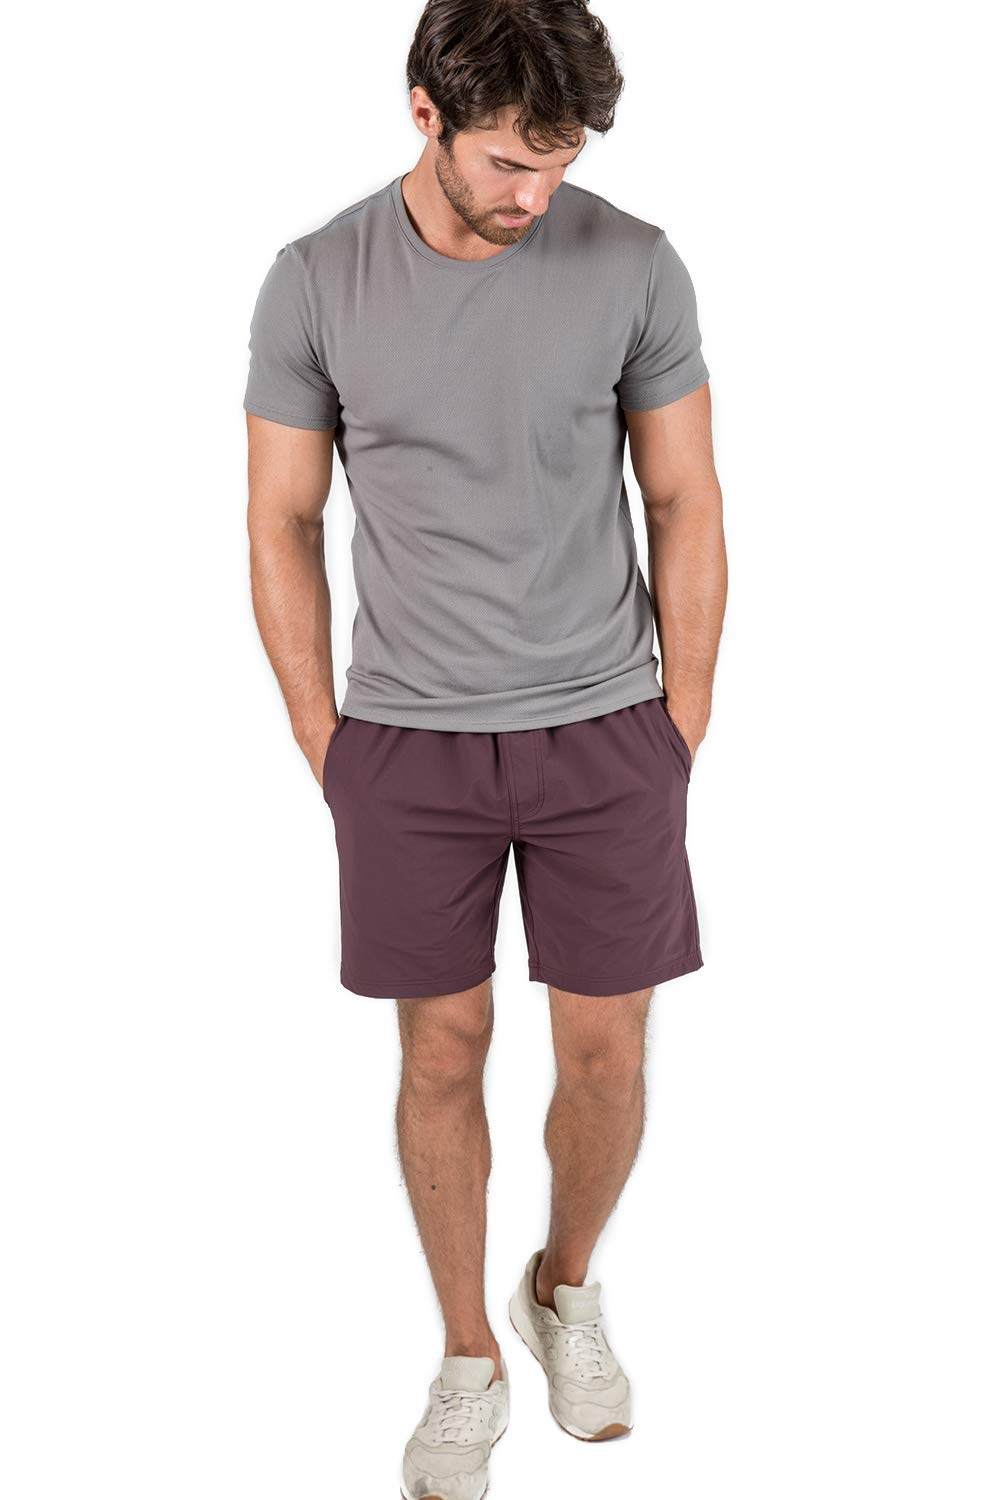 OLIVERS Apparel, Mens Water Repellent, 4-Way Stretch, All Over Short. Perfect for Running, Yoga, and Weightlifting (Small, Dark Crimson)